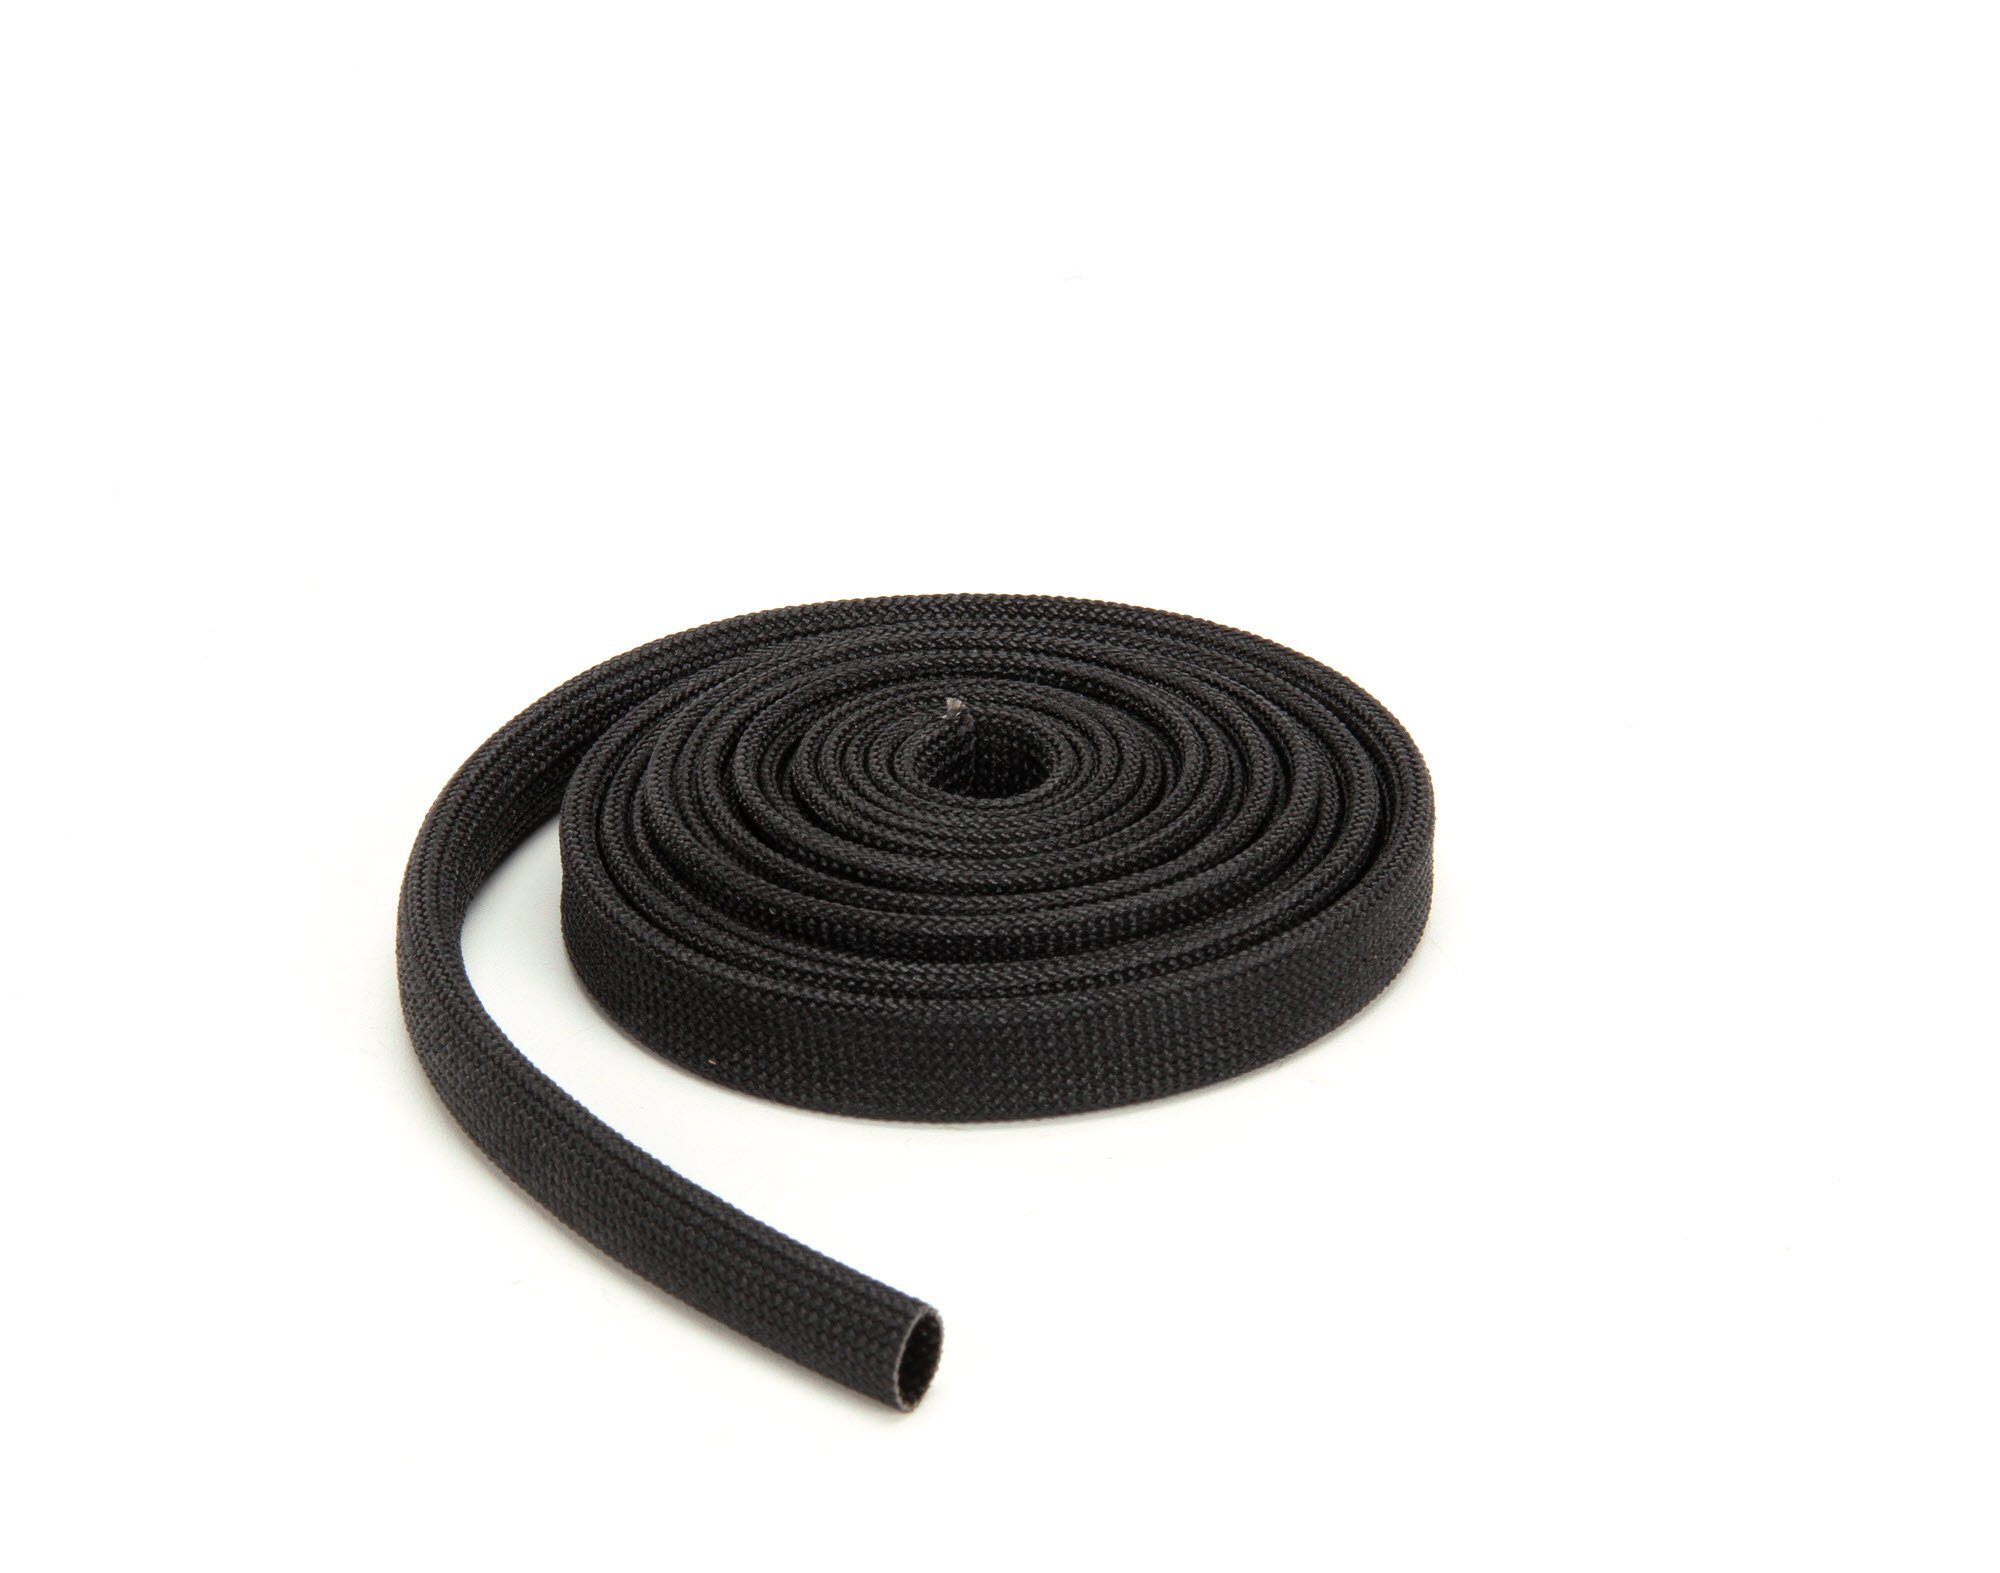 Techflex FGN0.38BK10 Insultherm High-Temperature Resin-Coated Fiberglass Braided Sleeve, 3/8'' x 10'